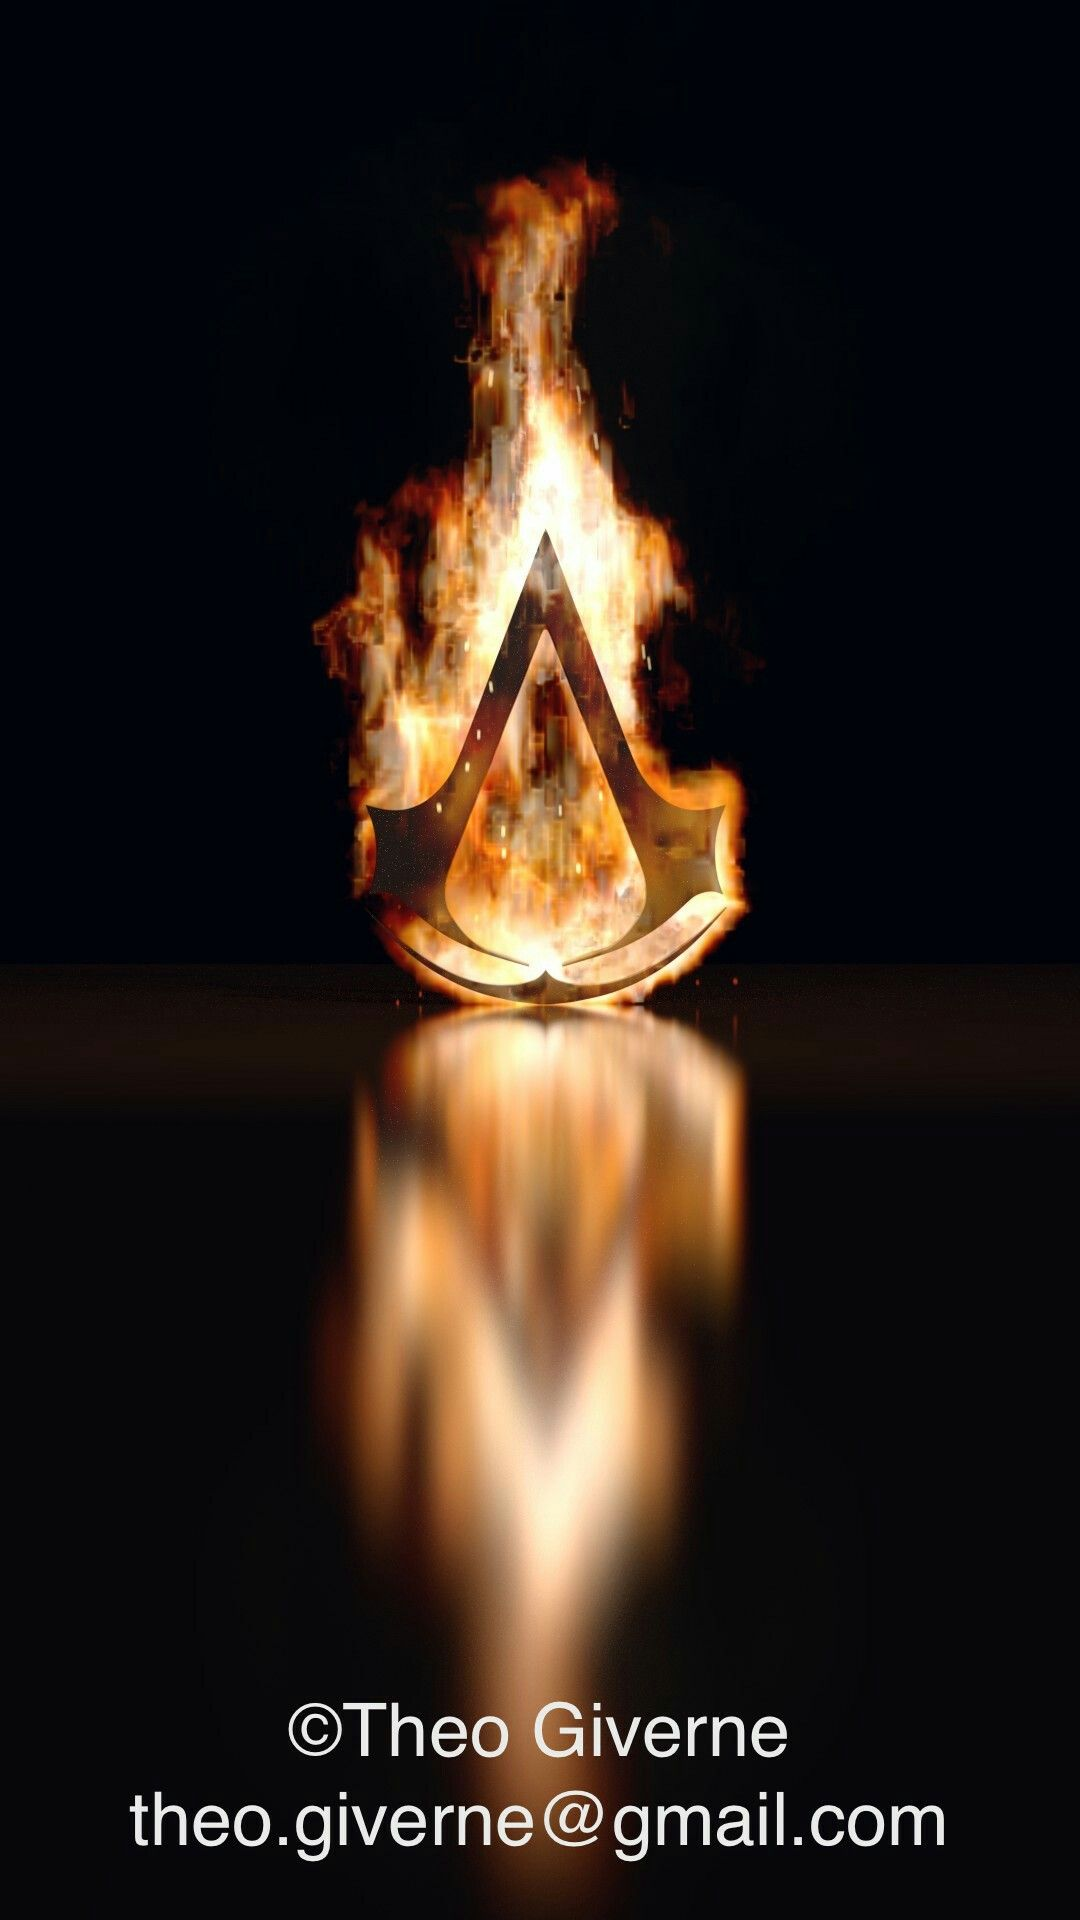 Assassin's Creed logo in fire ©Théo Giverne/théthon